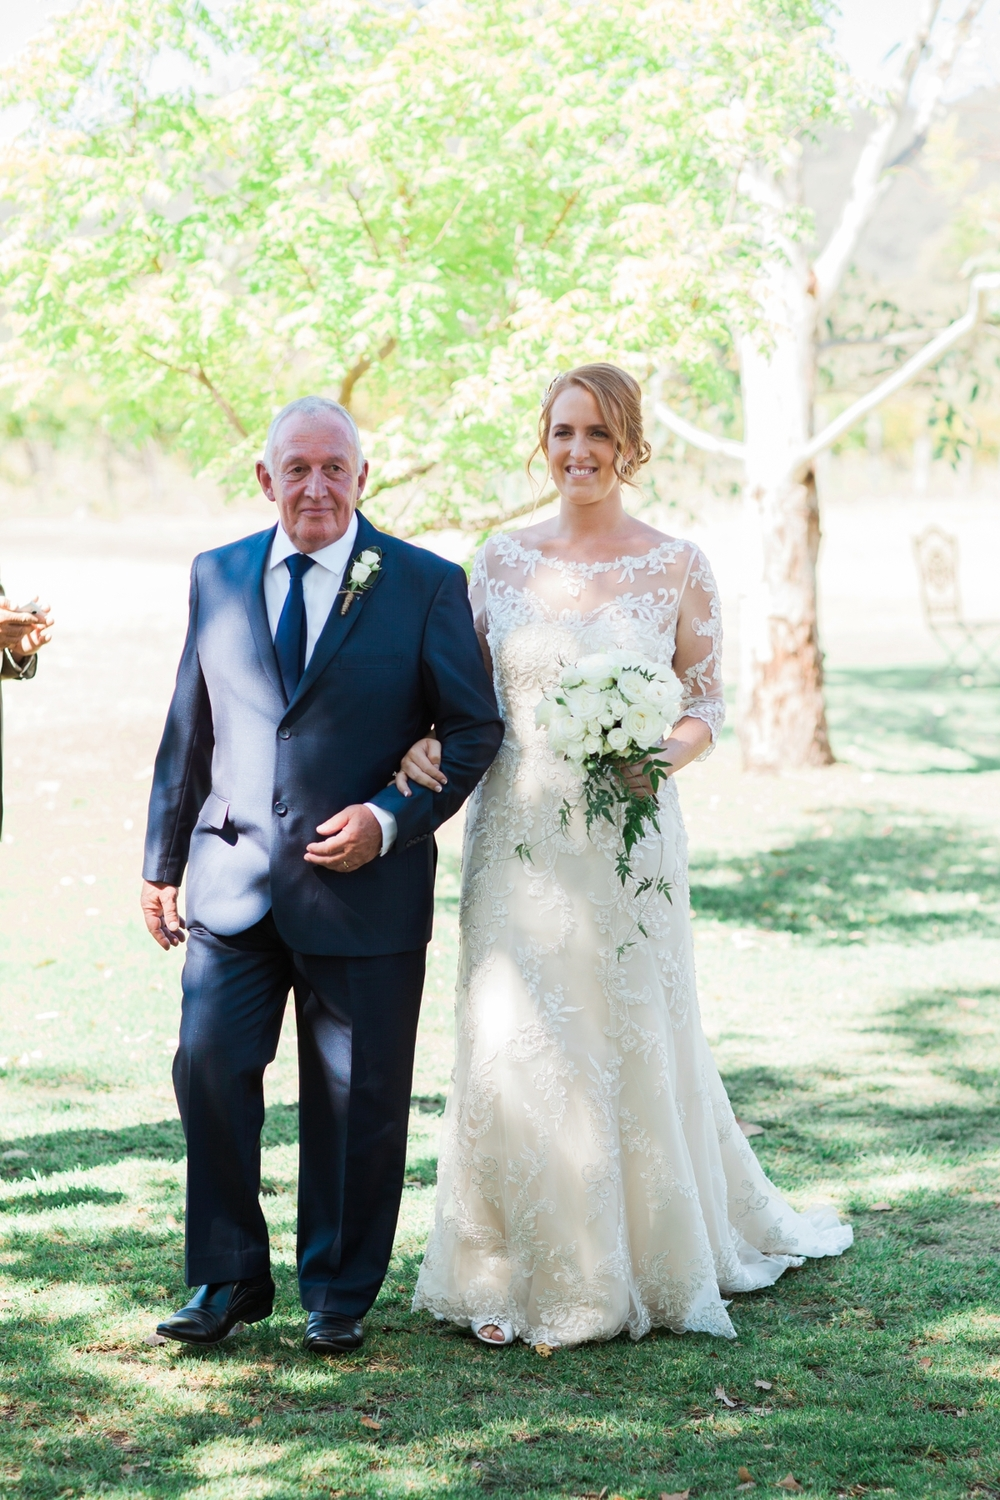 The Vine Grove Mudgee Wedding, Photography by Mr Edwards_1754.jpg